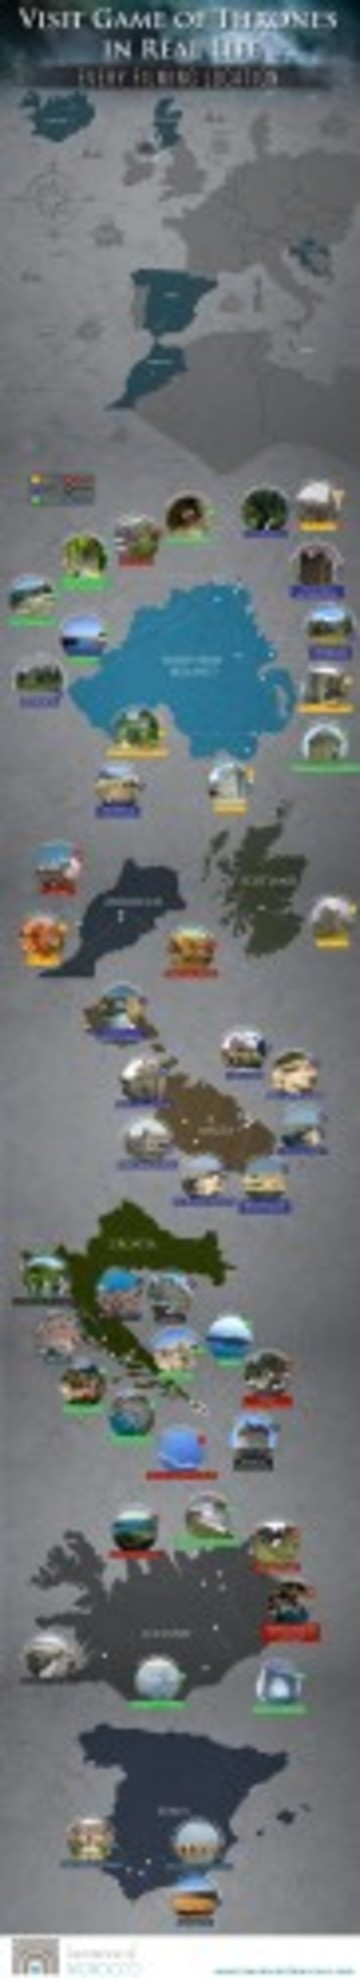 image of game of throne locations